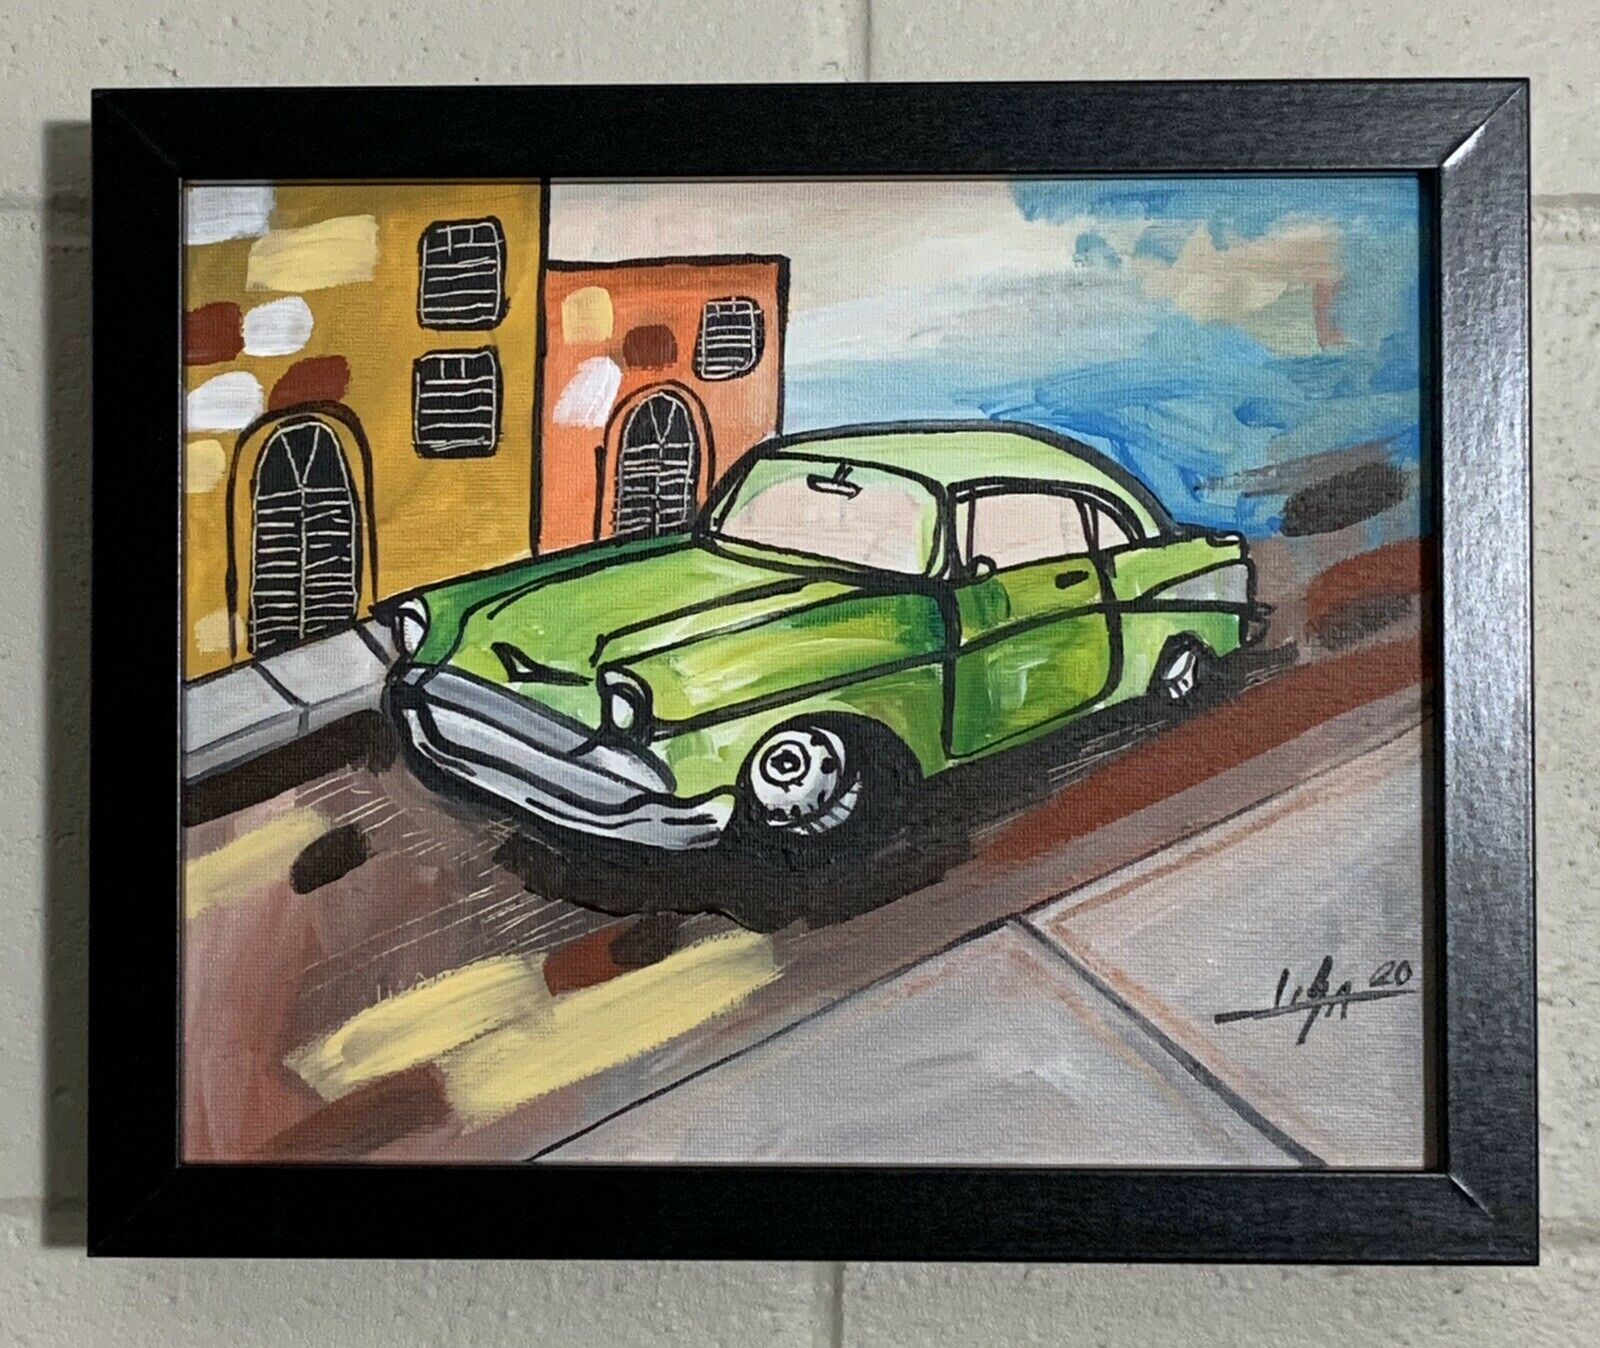 "PAINTING ORIGINAL ACRYLIC ON CANVAS (FRAME INCLUDED) CUBAN ART  8""X10"" By LISA. 1"